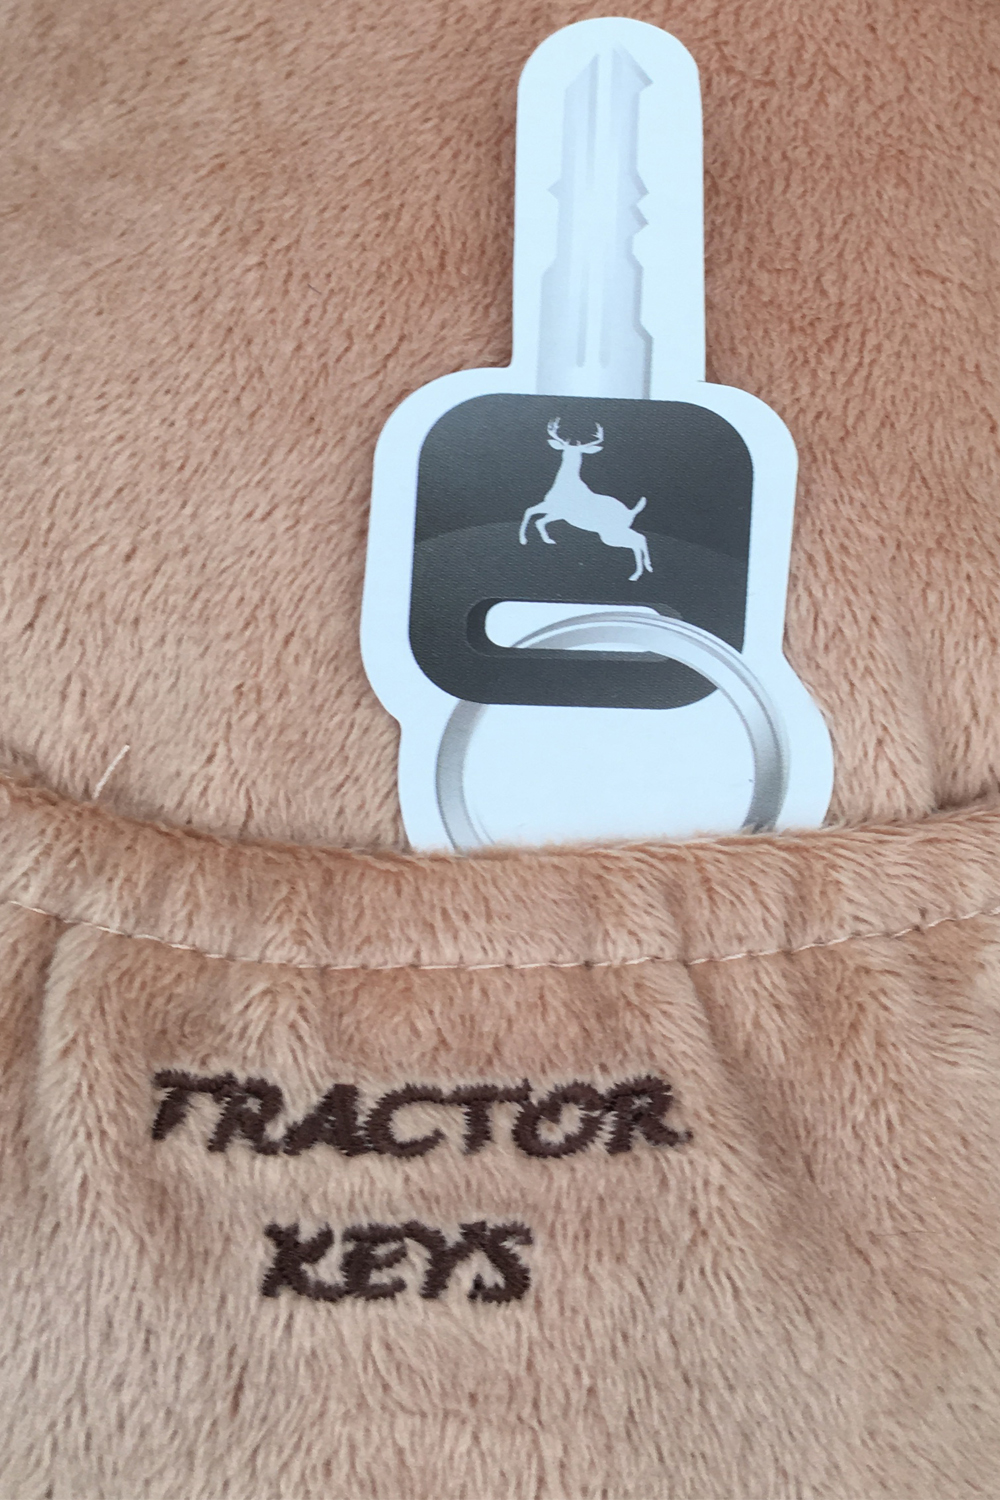 Work-Spuddy-Couch-Potato-Career-Keyworkers-Cushion-Remote-Holder-Novelty-Pillow thumbnail 24